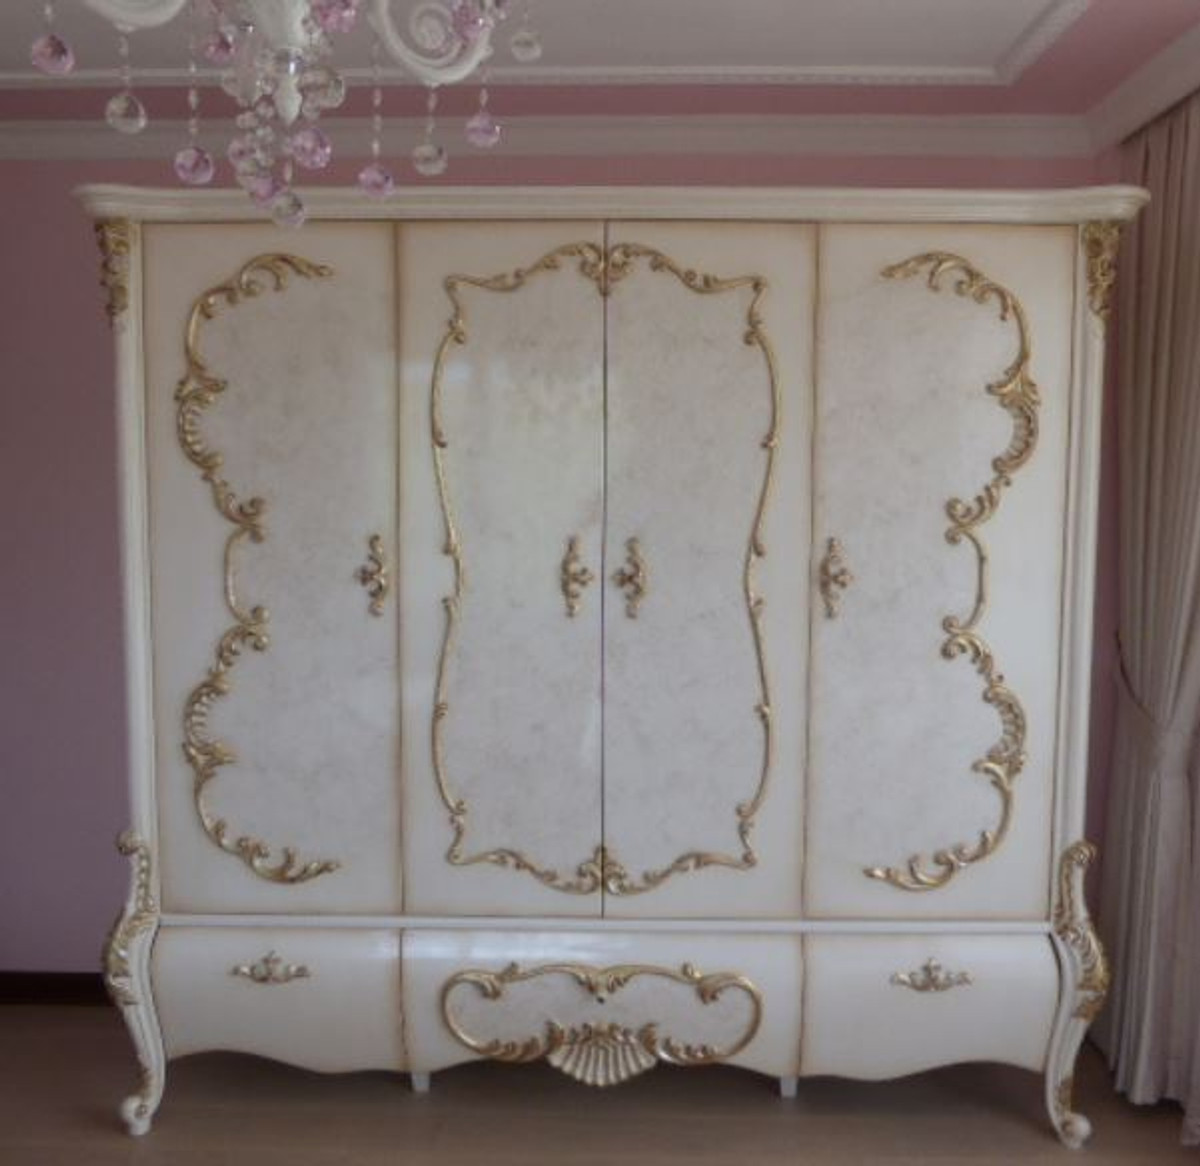 Casa Padrino Luxury Baroque Bedroom Cabinet White Cream Gold 320 X 70 X H 250 Cm Noble Solid Wood Wardrobe Bedroom Furniture In Baroque Style Luxury Quality